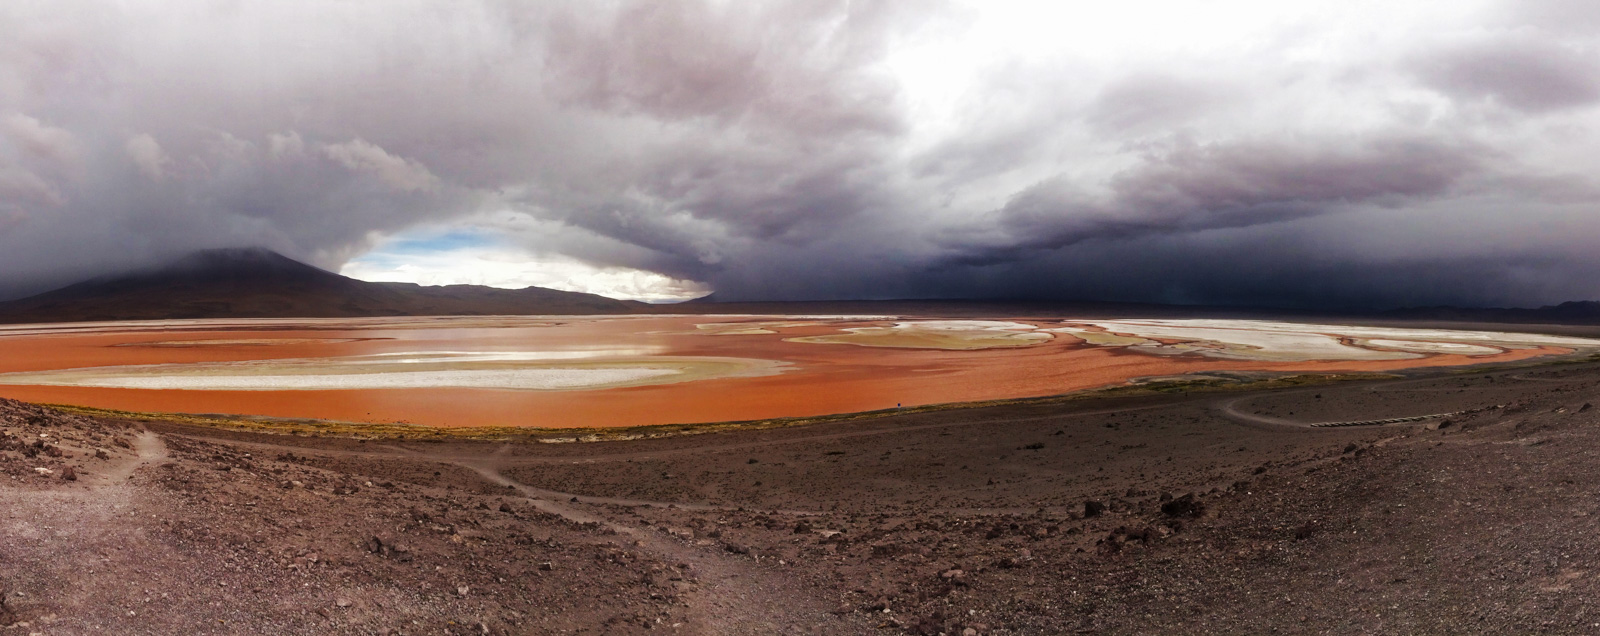 Backpacking the Salt Flats? Here's some useful tips. One of the pink lagoons with low clouds over it surrounded by the rustic coloured earth